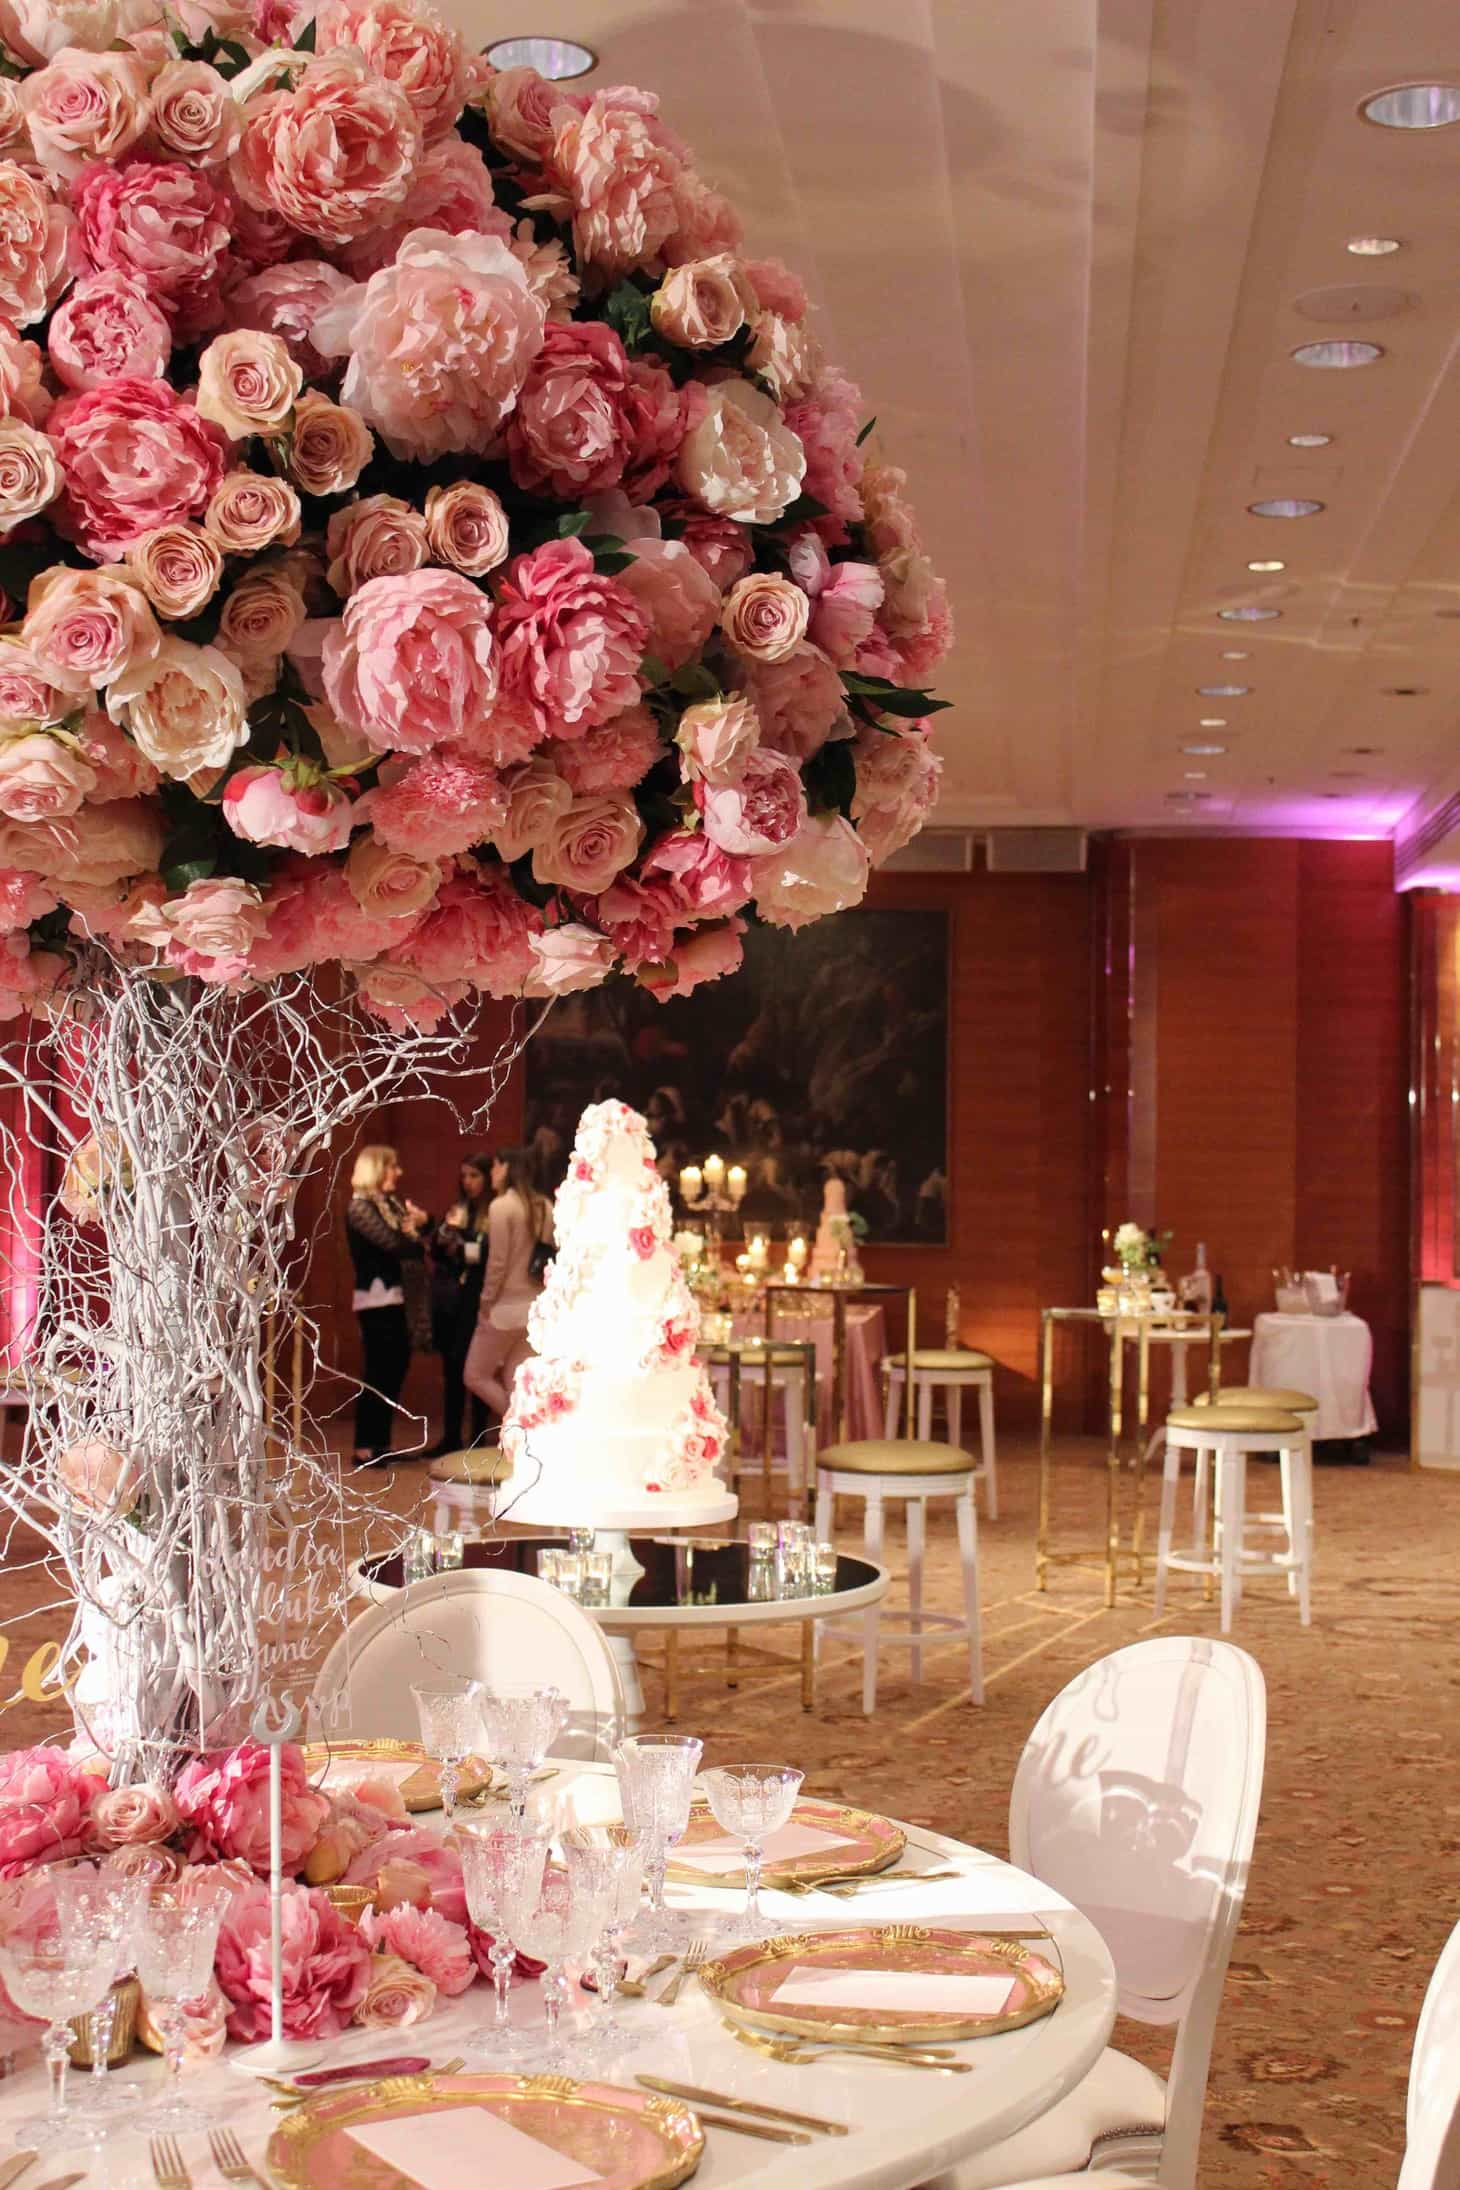 Roses, garden roses, flowers, wedding floristry 2016, wedding roses, Scarlet Events, wedding shows, Four Seasons Hotel London, Philippa Craddock – Luxury florist, once upon a time, once upon a fairytale